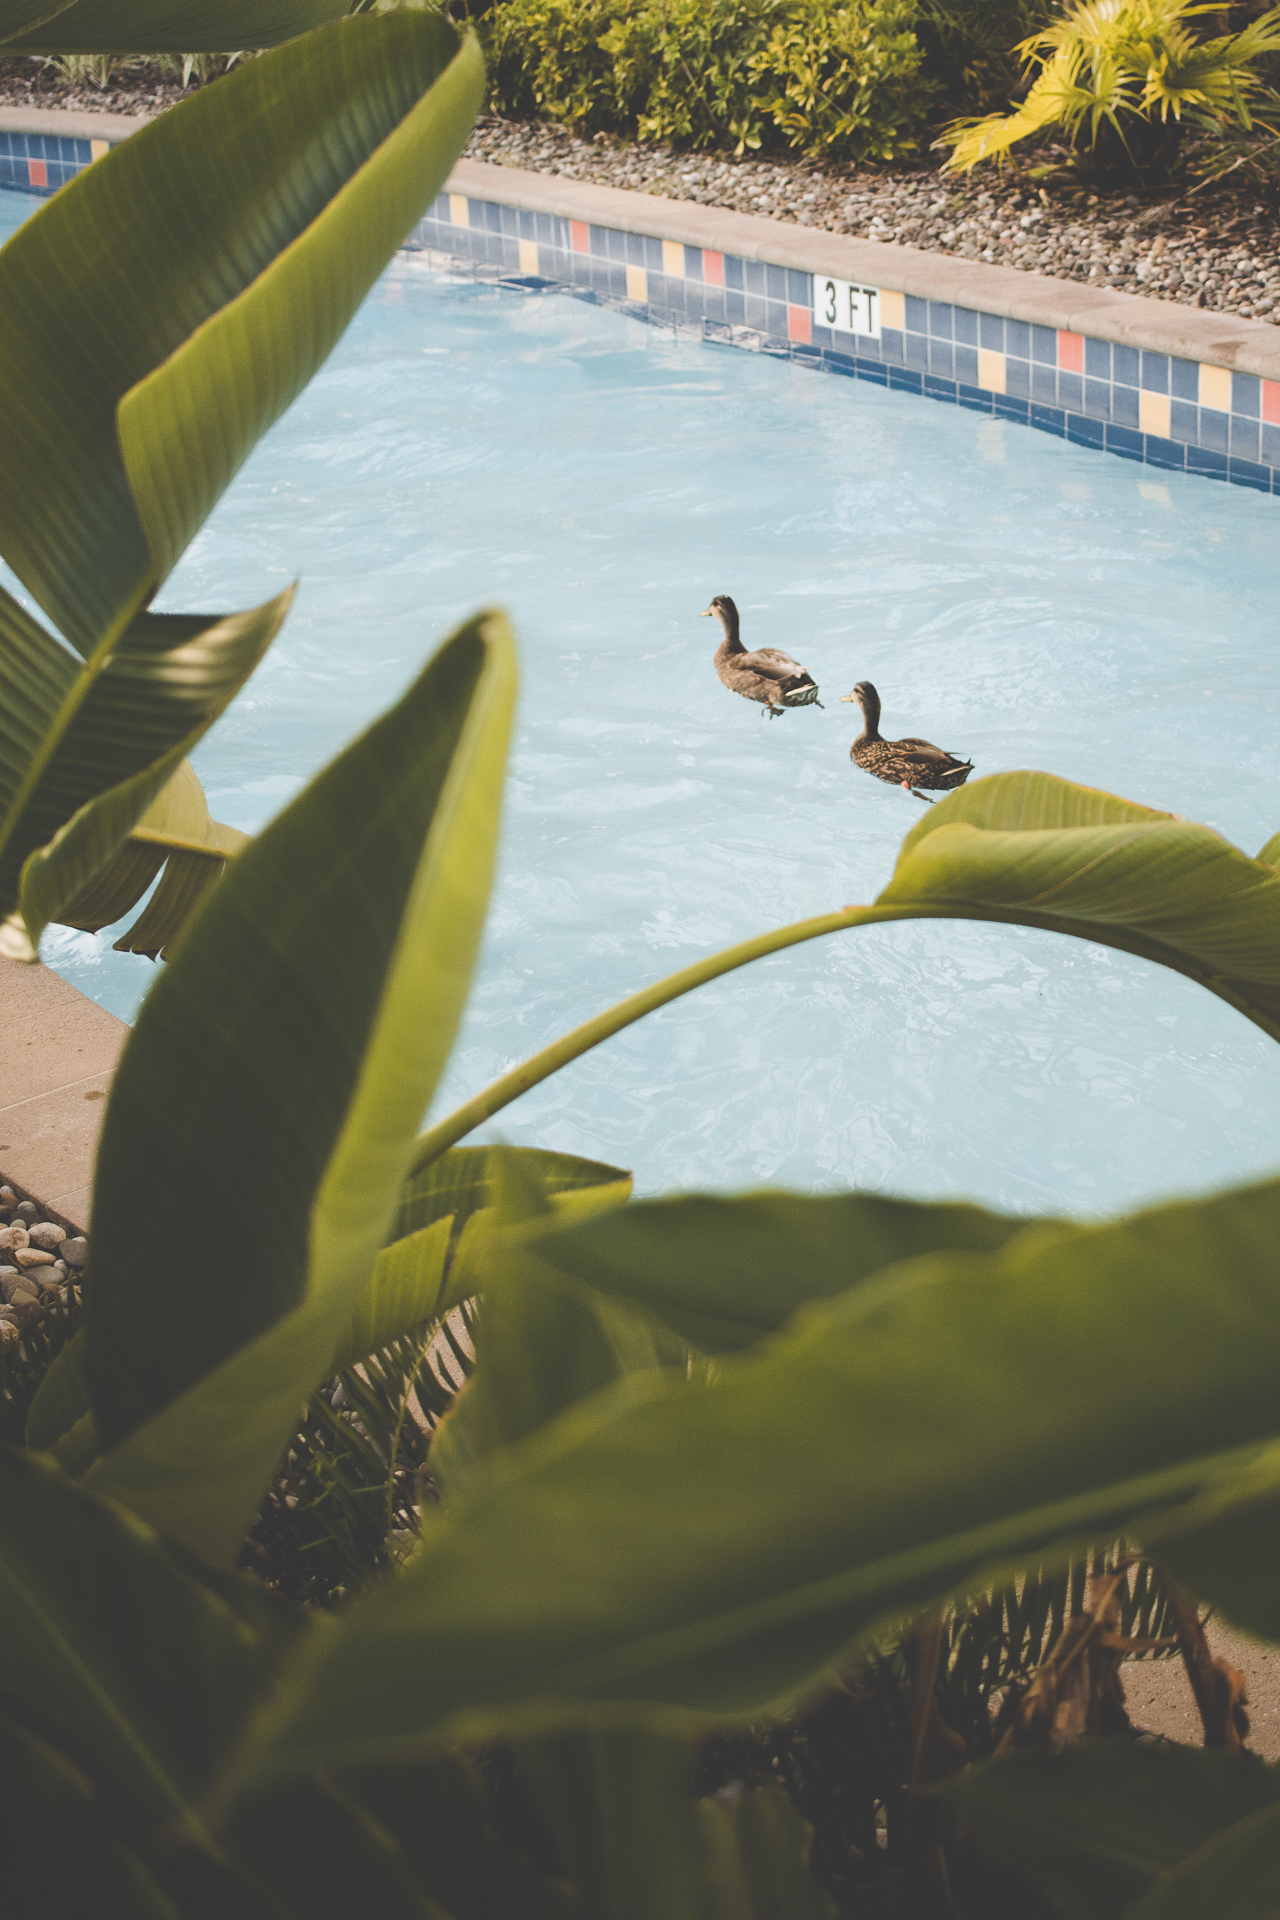 Even the ducks can enjoy the lazy river. Fun fact, the life guard said that all the ducks at Cabana Bay are named.